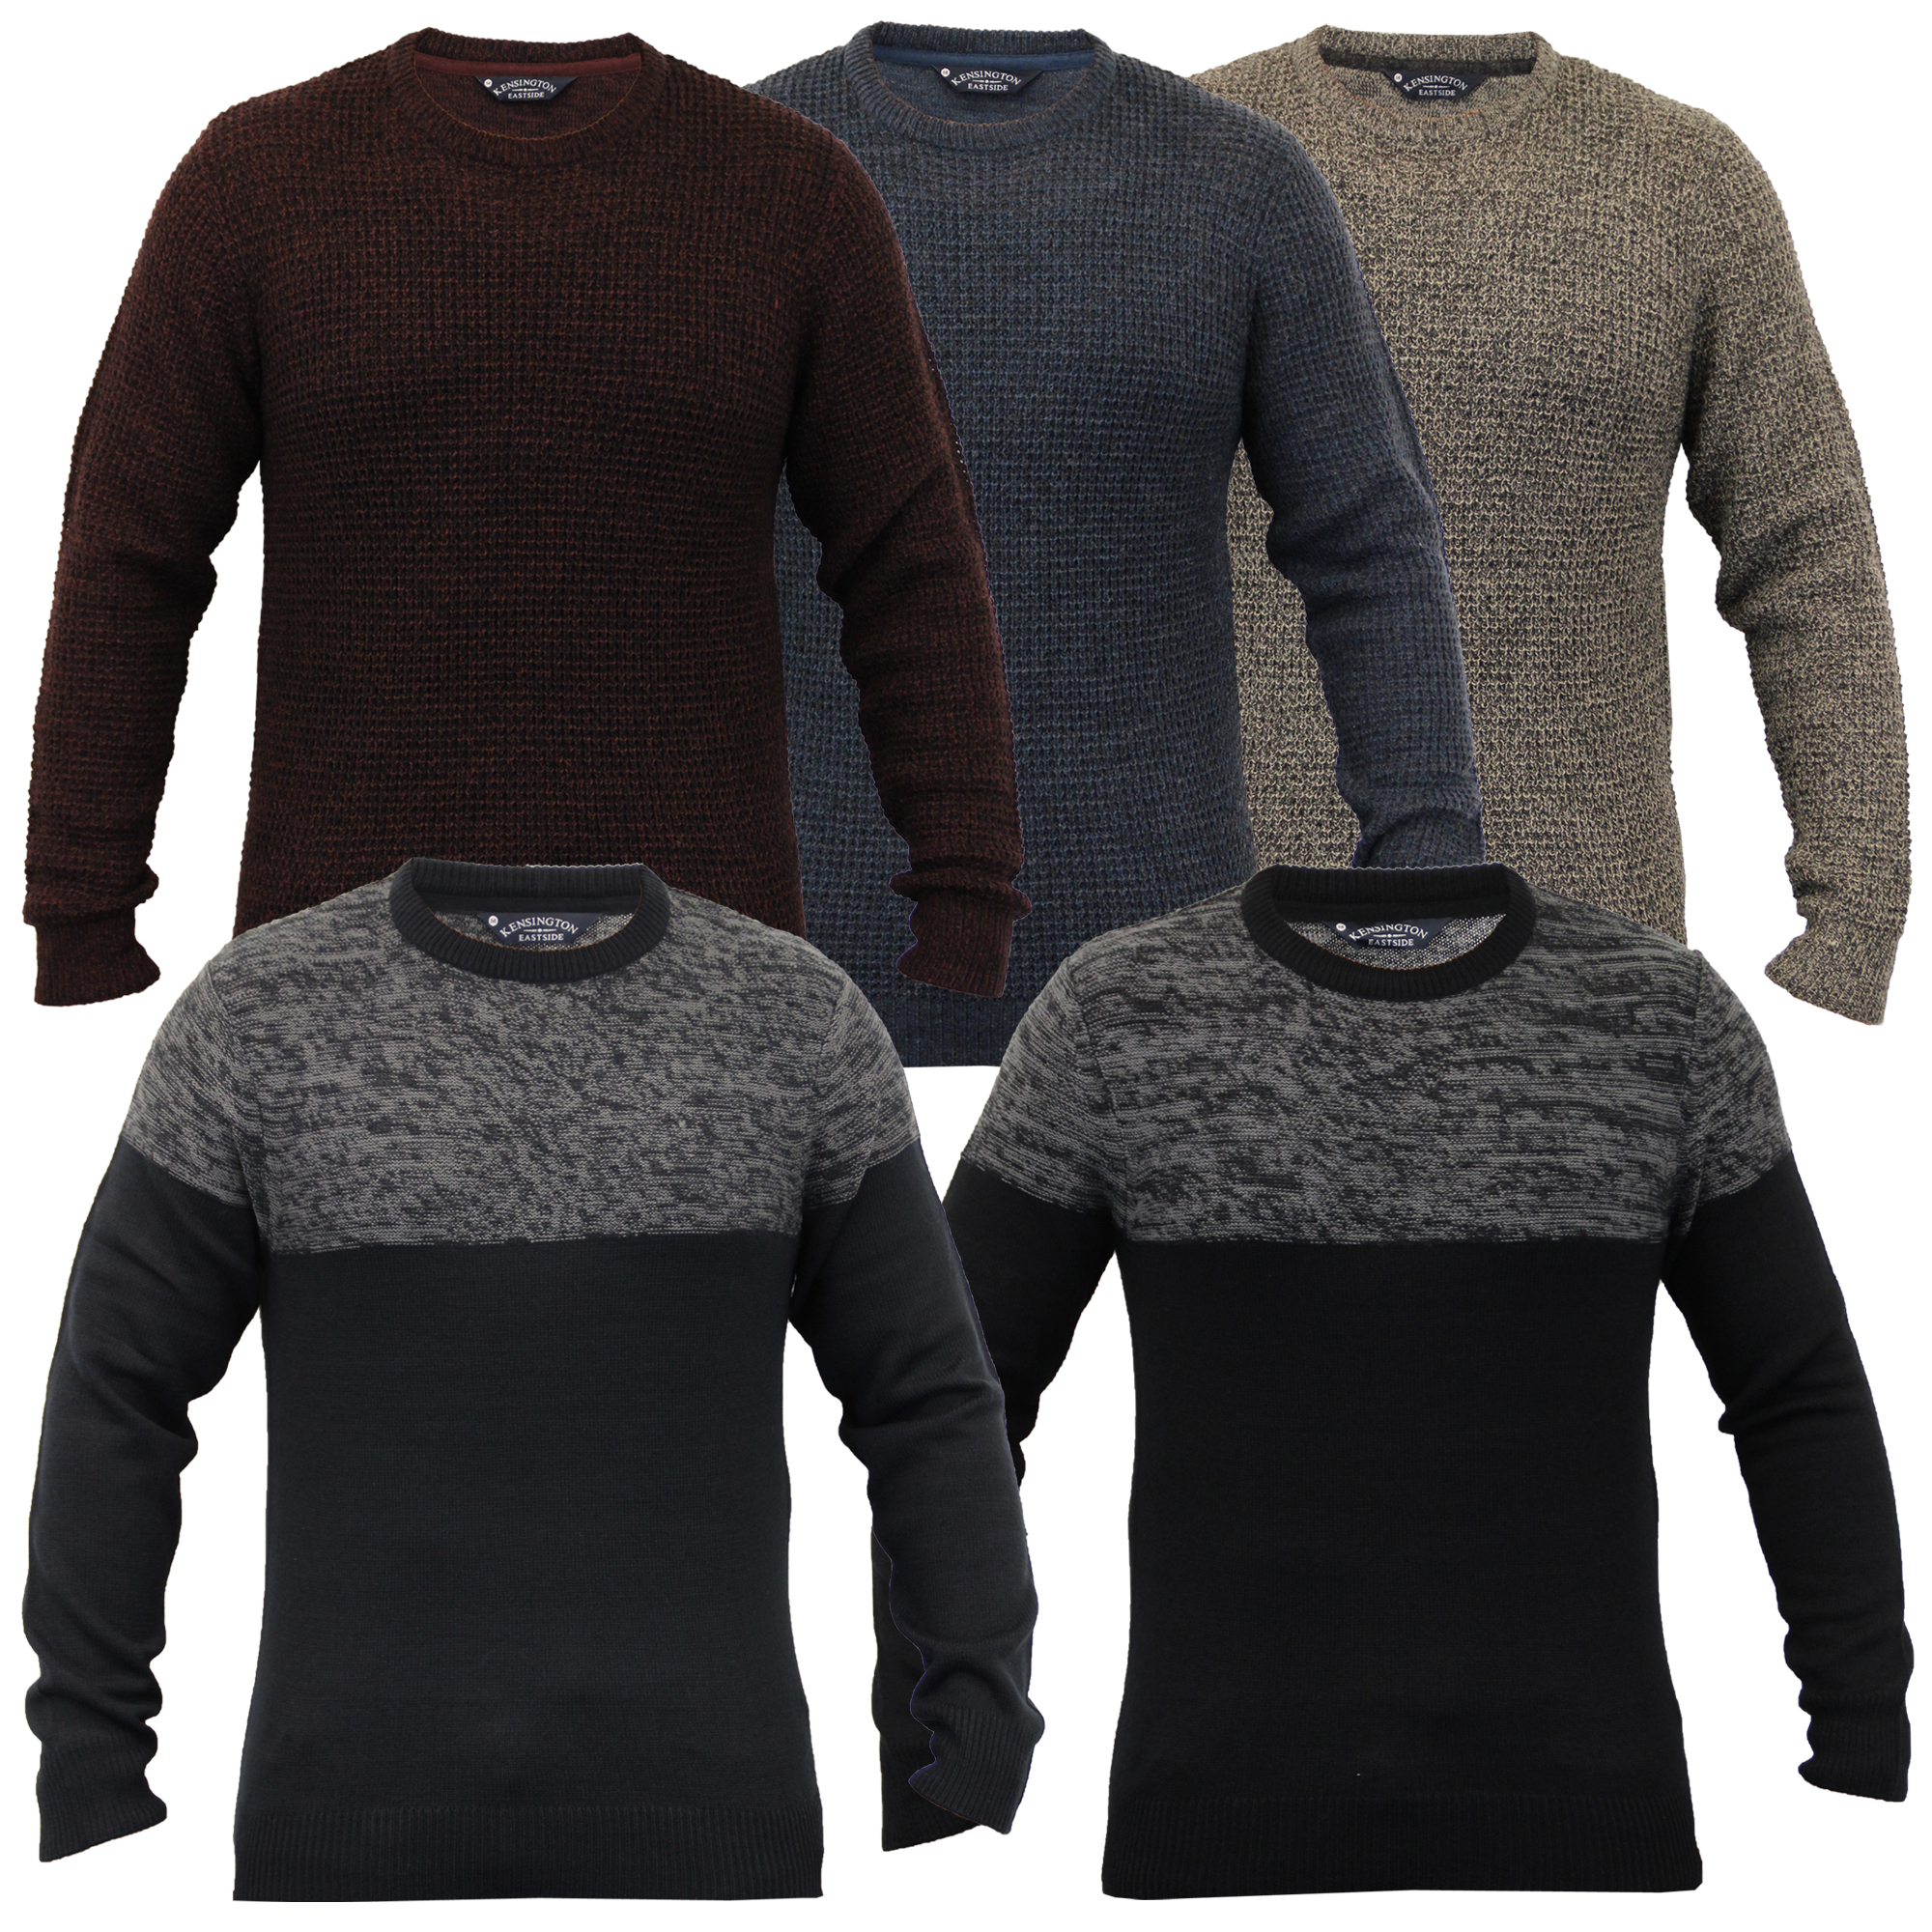 Details about Mens Knitted Wool Blend Jumper Pullover Winter Sweater By Kensington Eastside